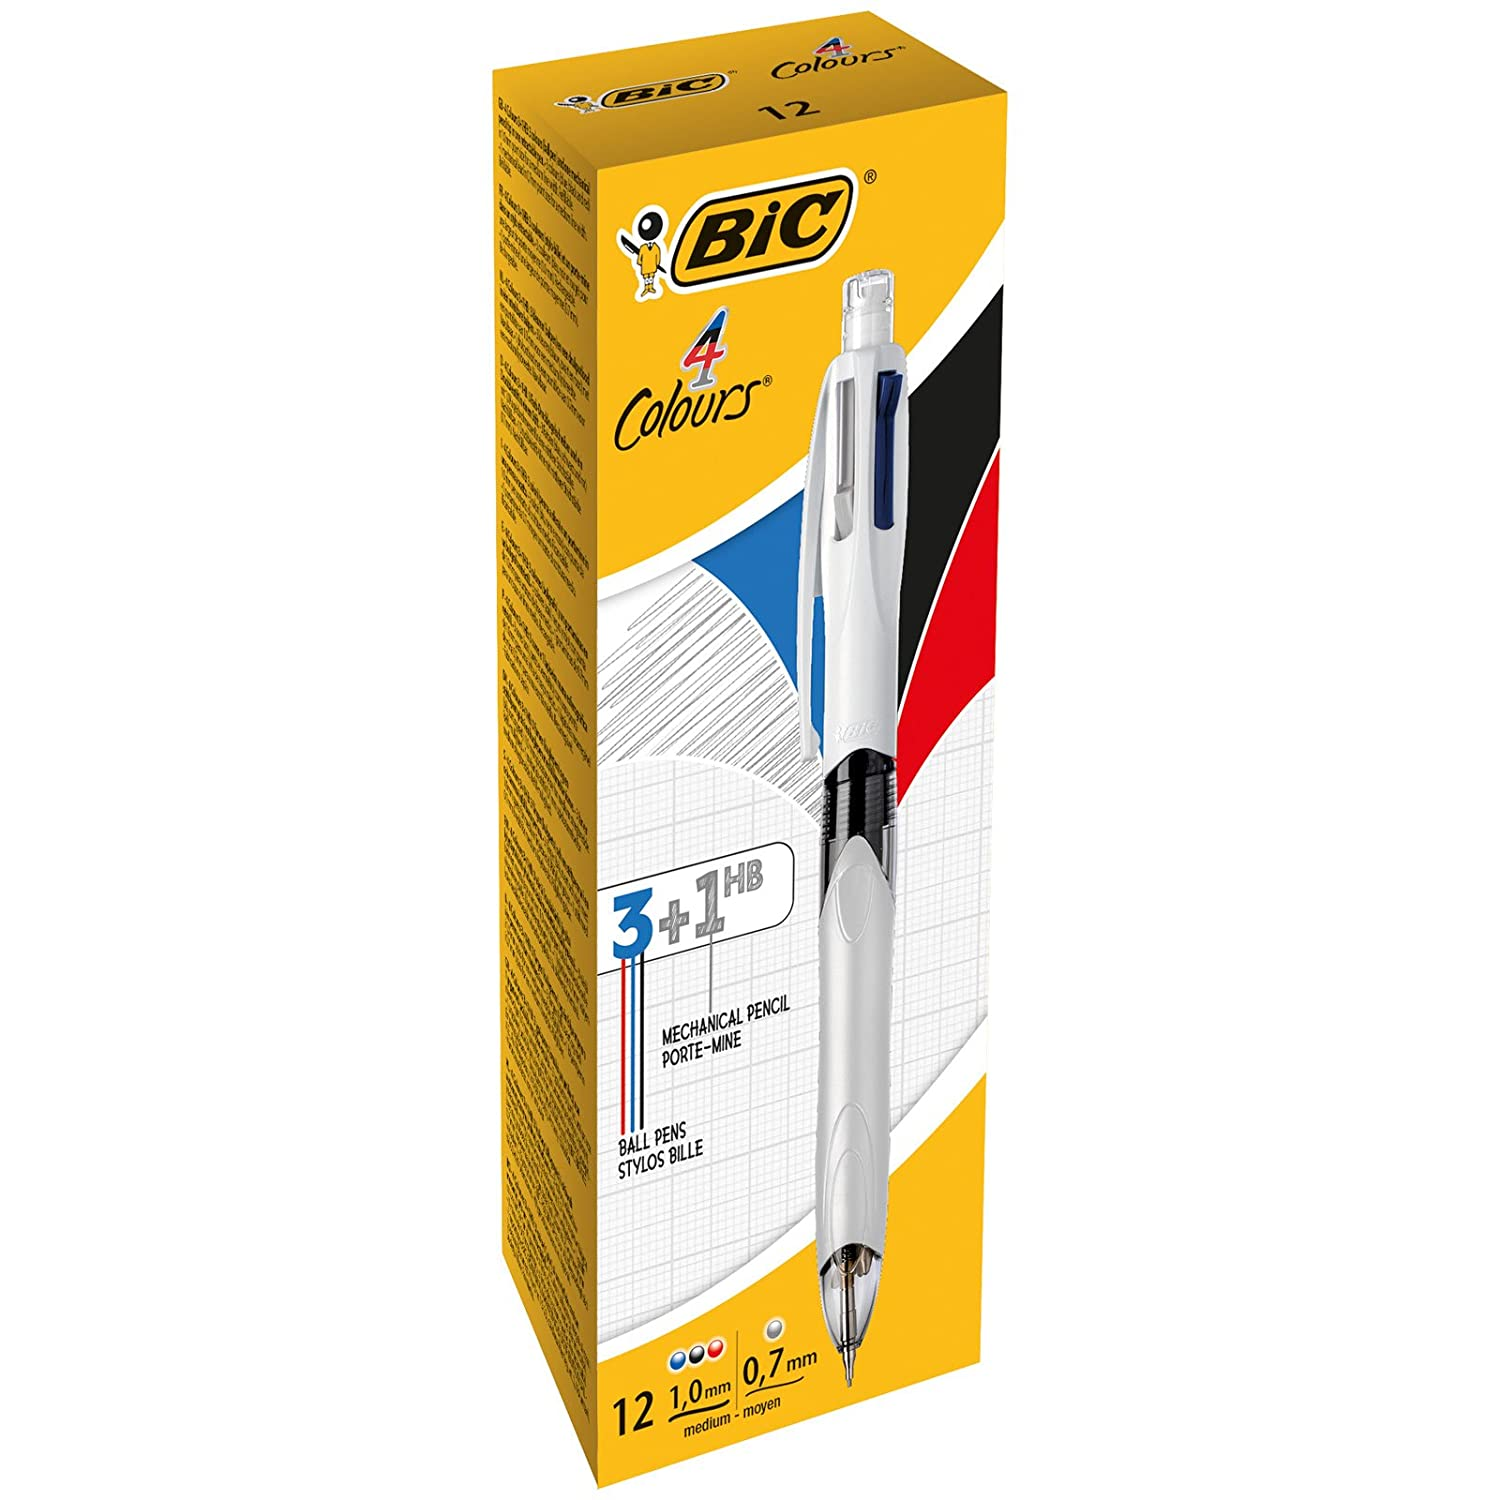 Bic Penna Multifunction 2 in 1, Scatola con 12 Pezzi 942104